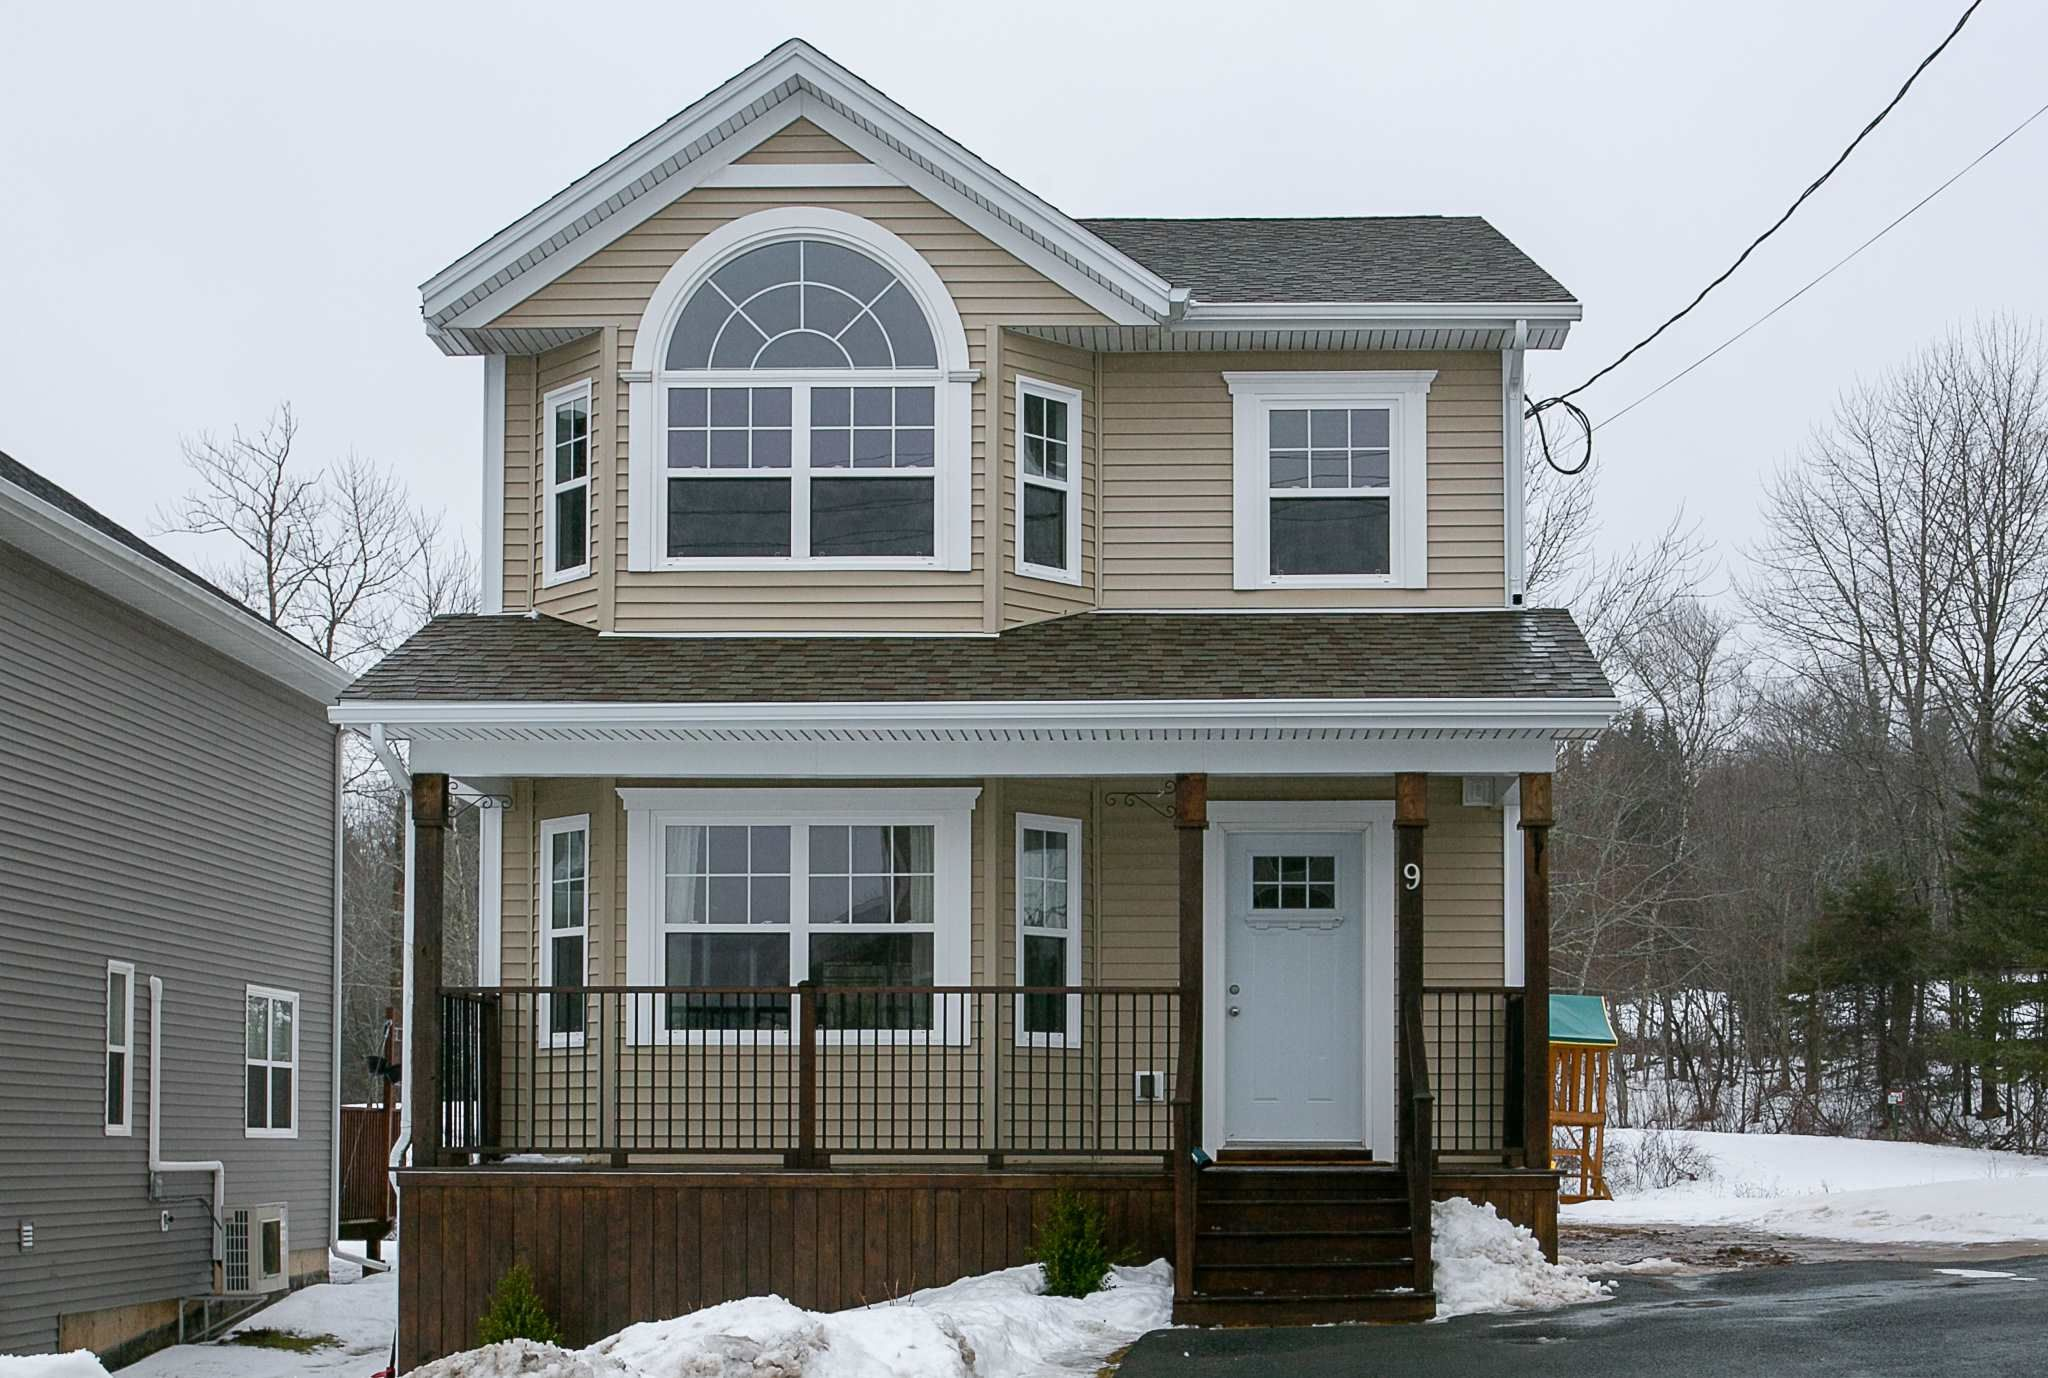 Main Photo: 9 Wakefield Court in Middle Sackville: 25-Sackville Residential for sale (Halifax-Dartmouth)  : MLS®# 202103212